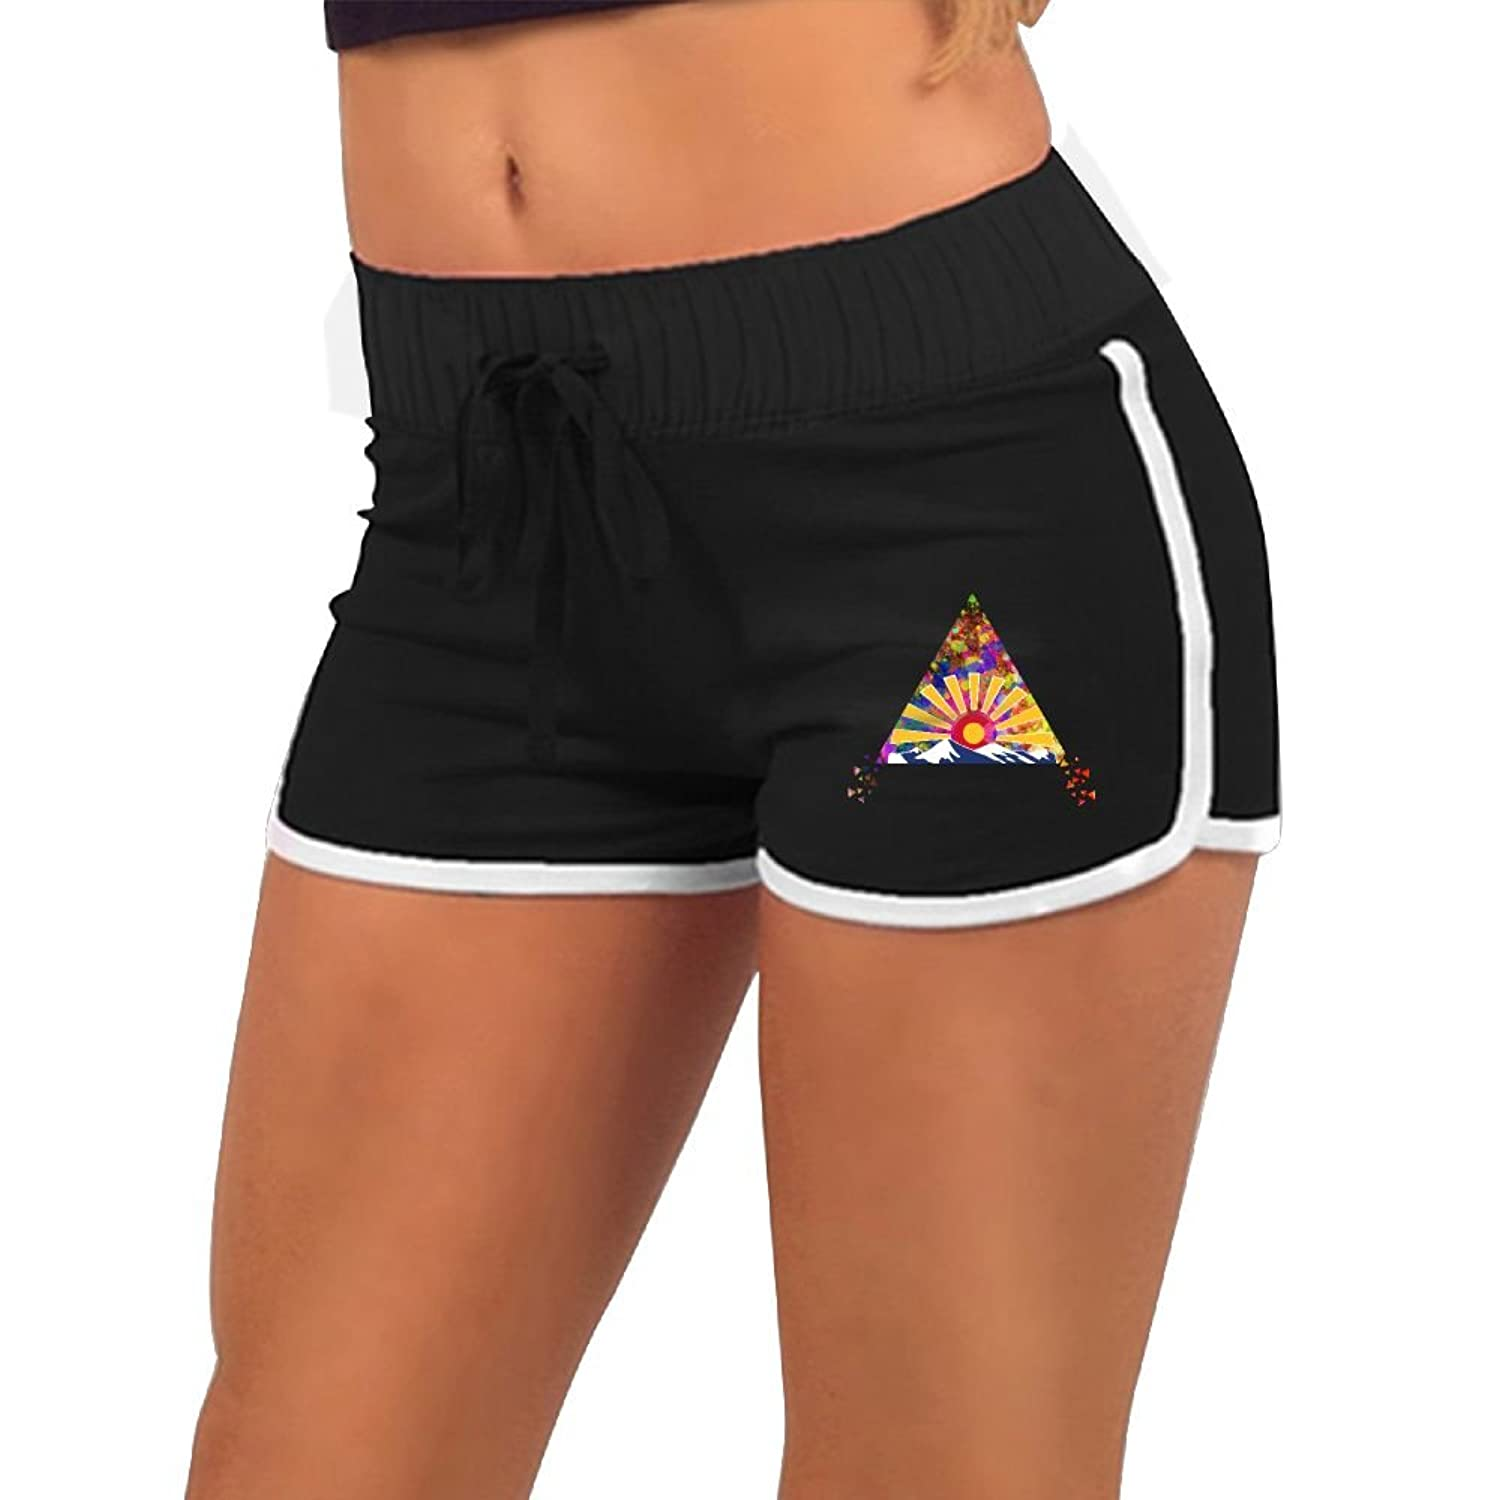 Baujqnhot Watercolor Triangle Colorado Sunset Women Comfort Waist Workout Running Shorts Pants Yoga Shorts